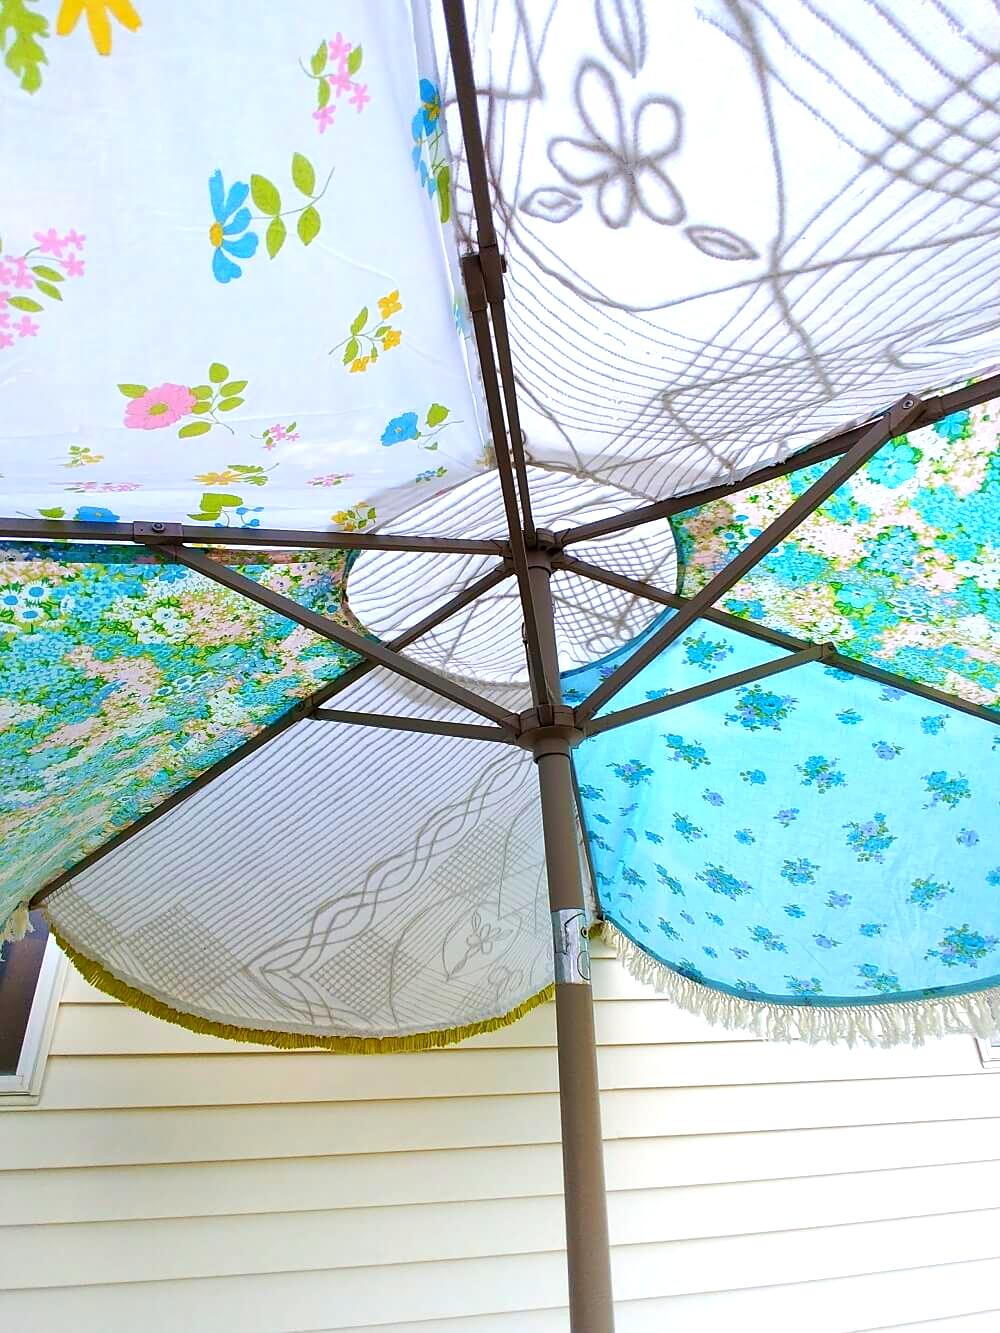 Patchwork umbrella cover by Little Vintage Cottage, featured on Funky Junk Interiors